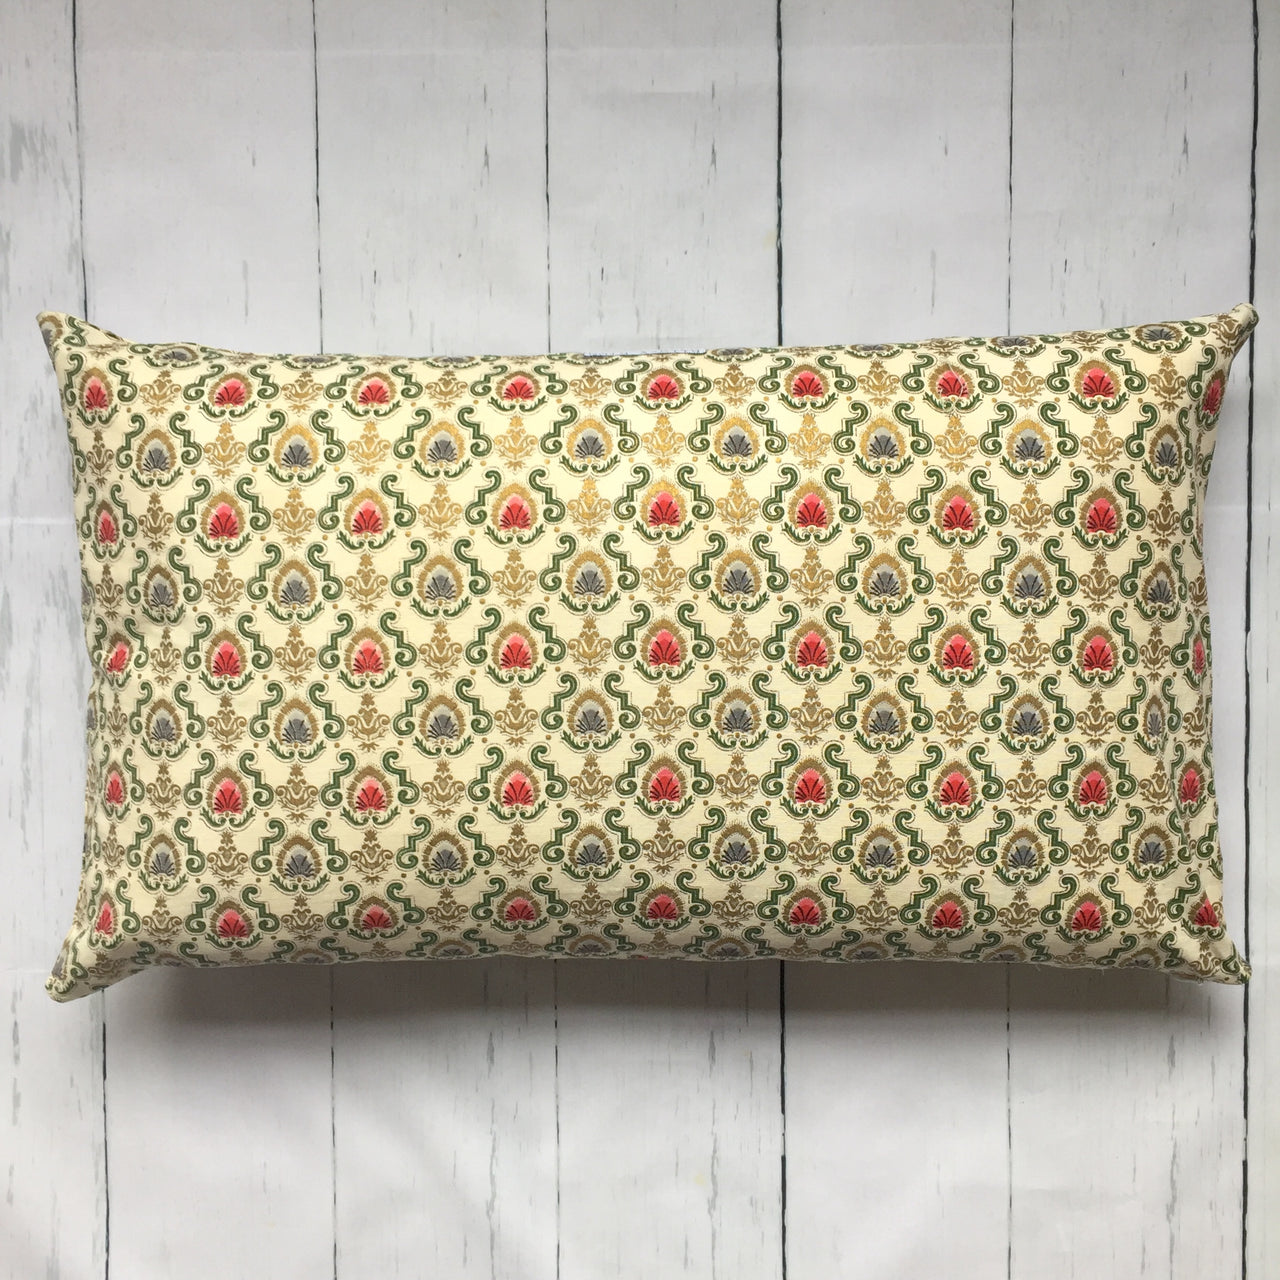 eco-friendly-sustainable-repurposed-handmade-home-decor-vintage-lumbar-pillow